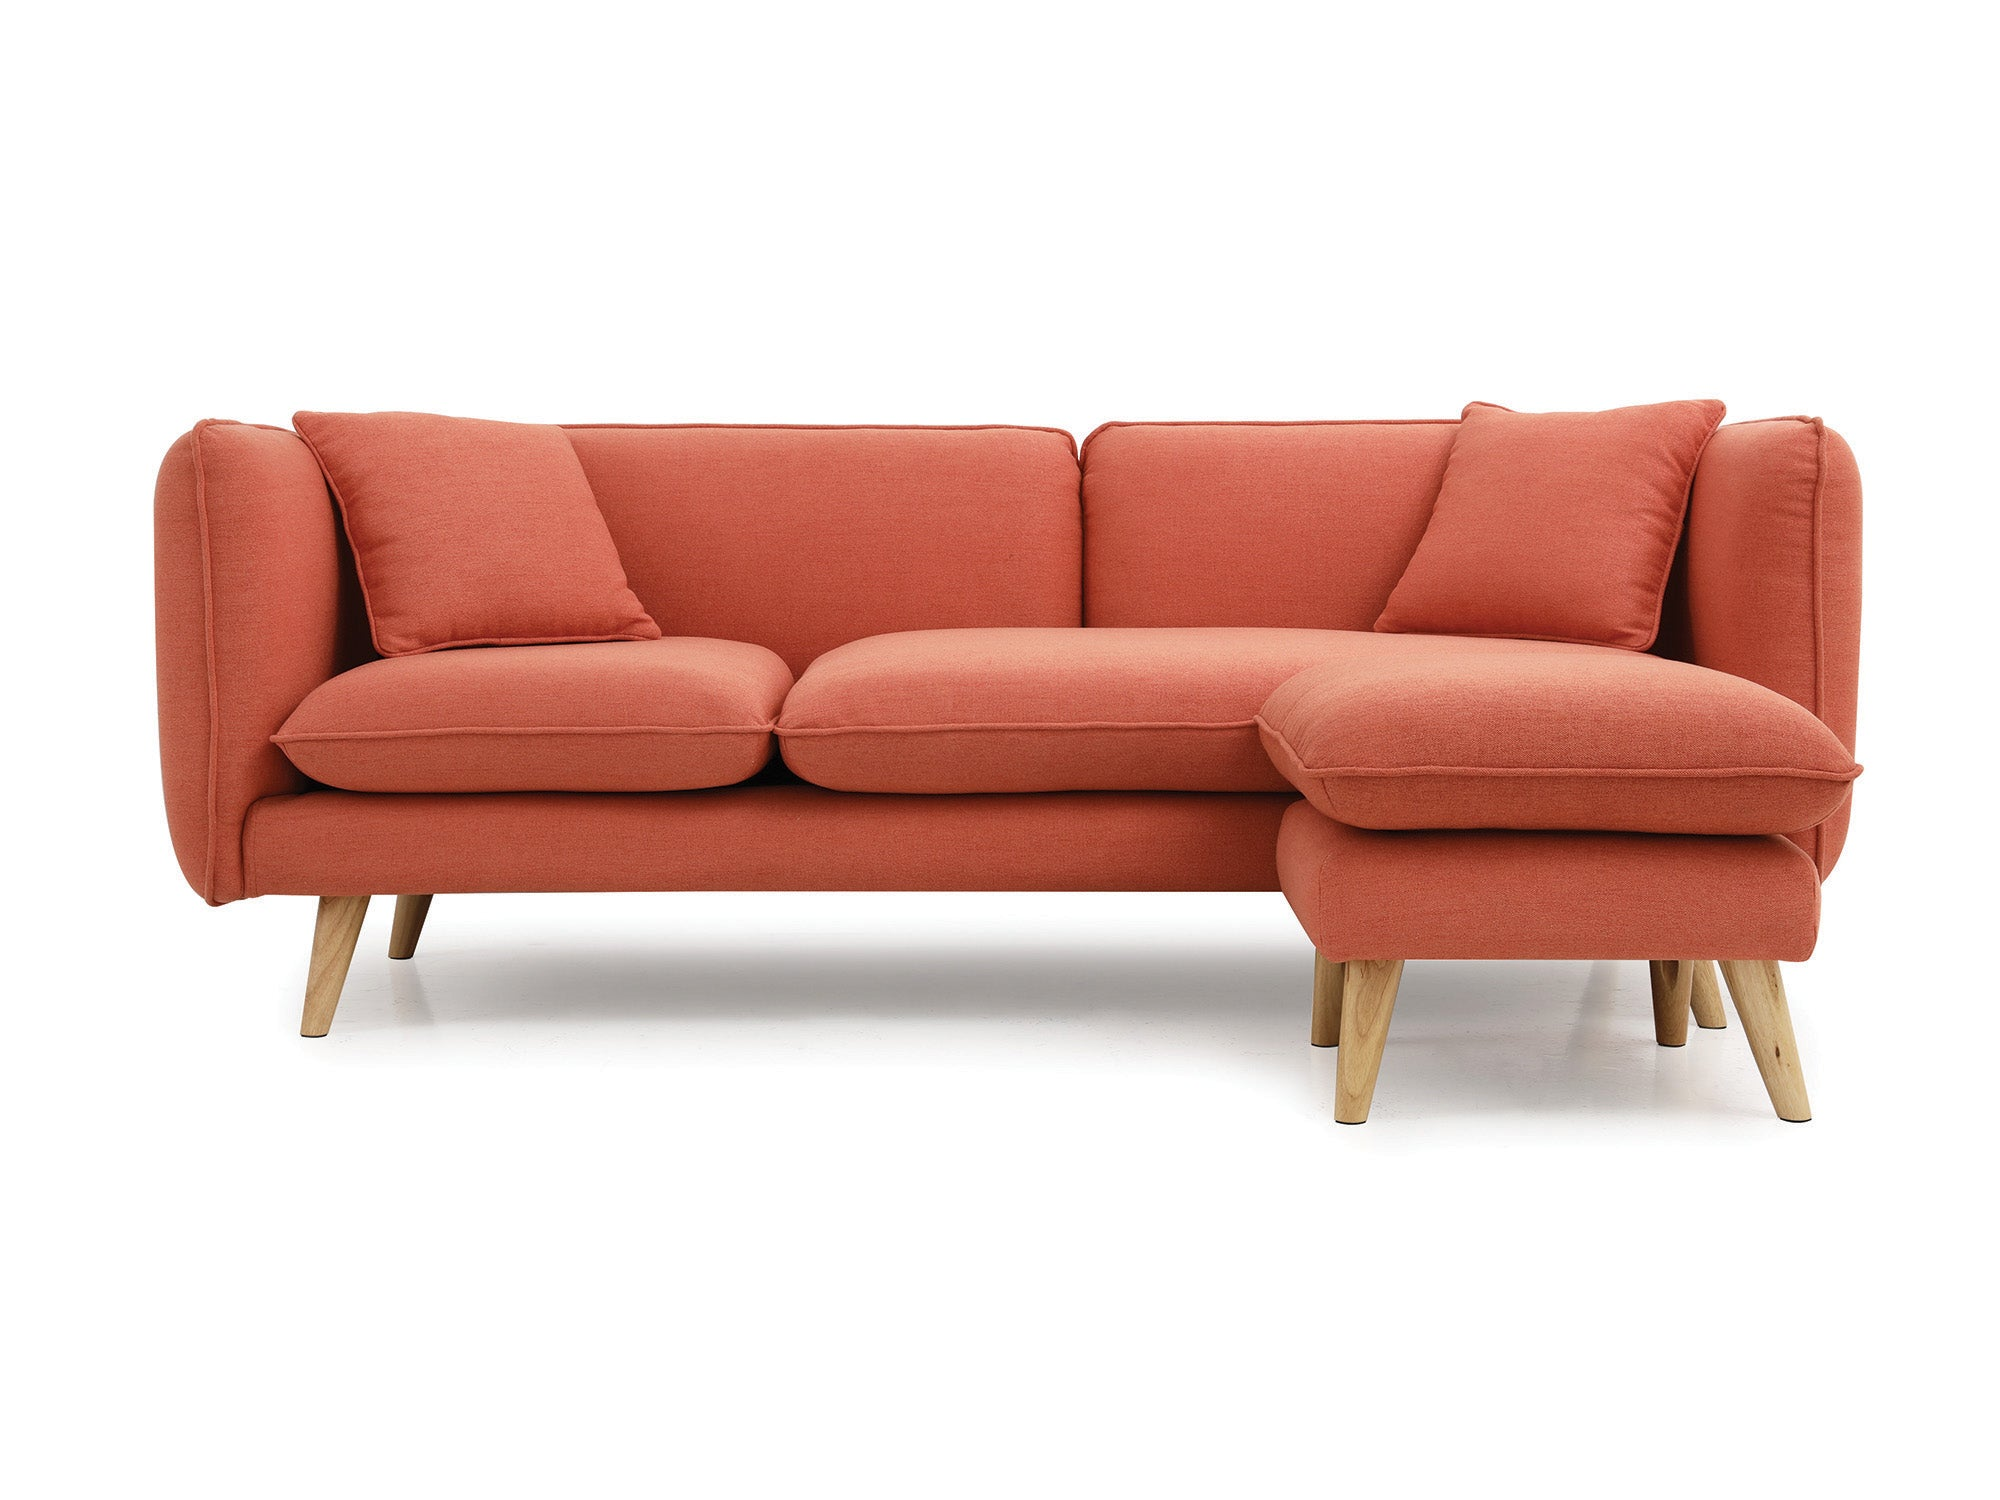 Newell furniture alesia 3 seater orange meubles for Meuble brossard